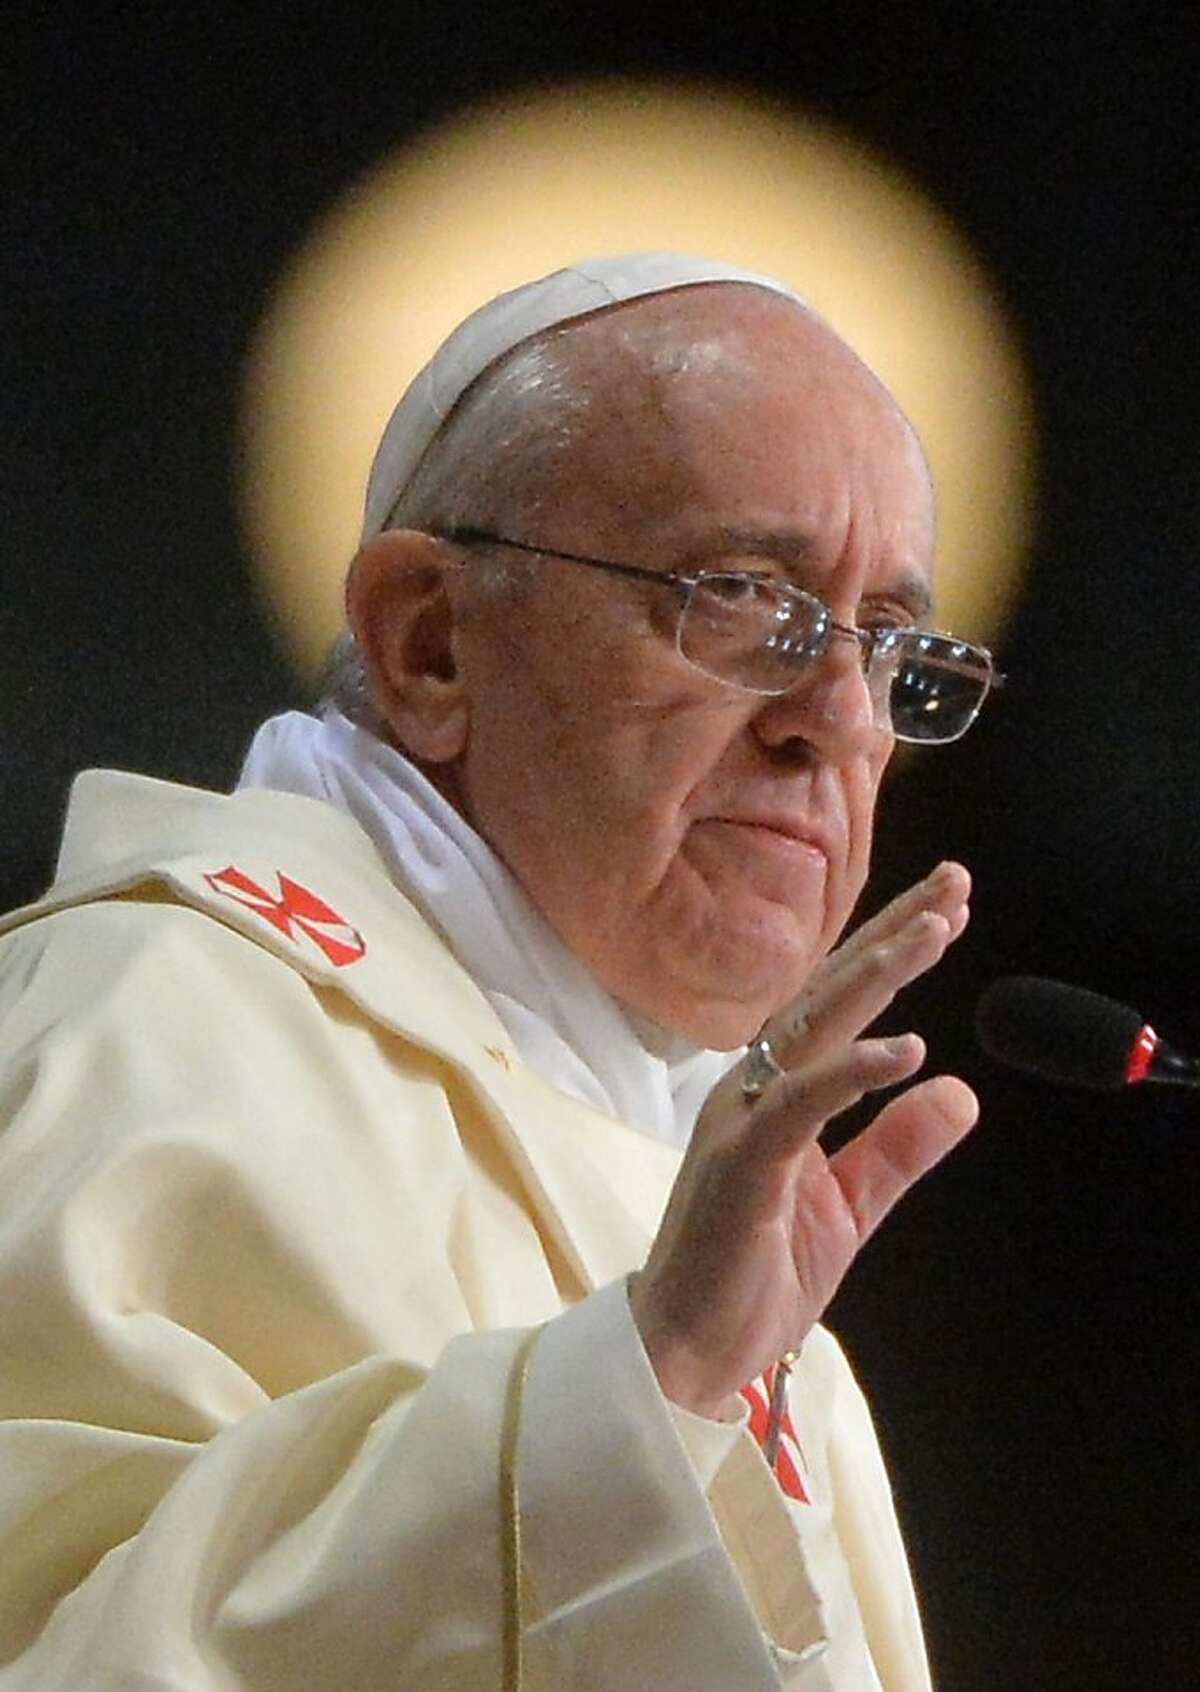 4. Pope Francis, pope